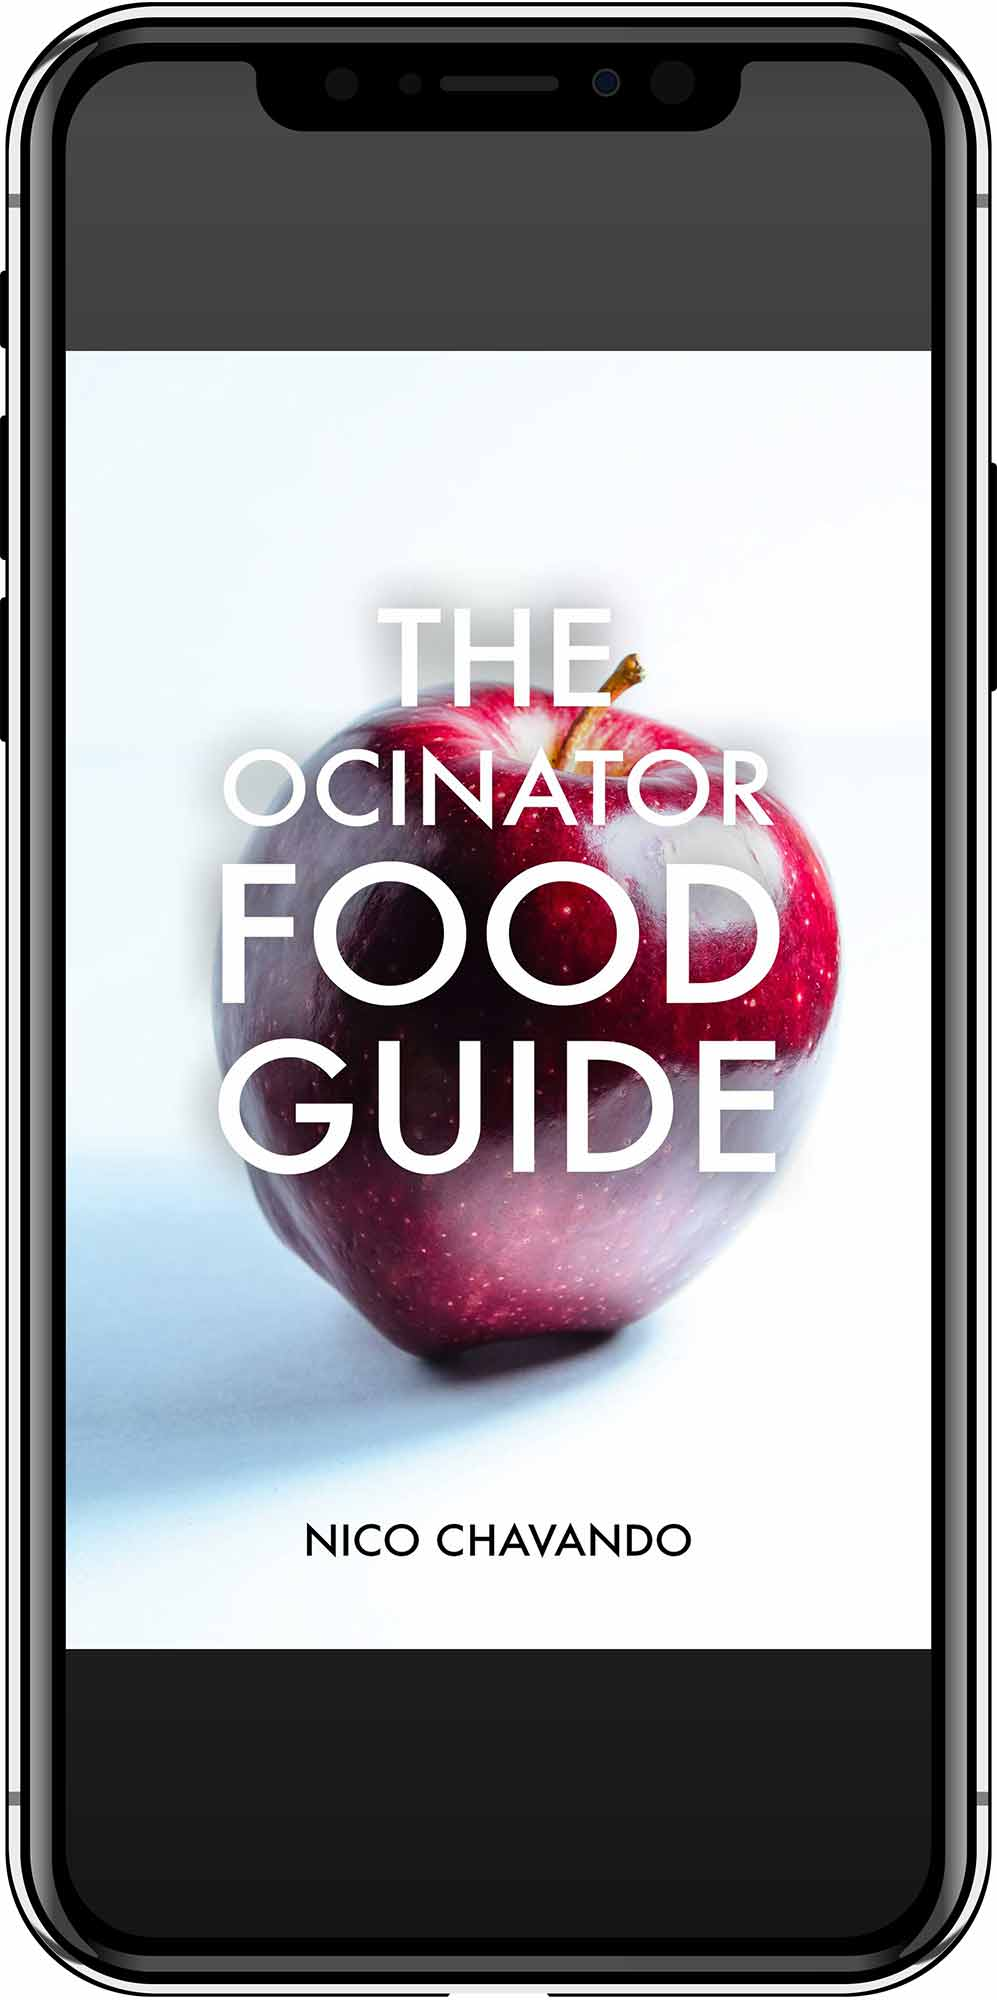 Iphone Ocinator Food Guide Small